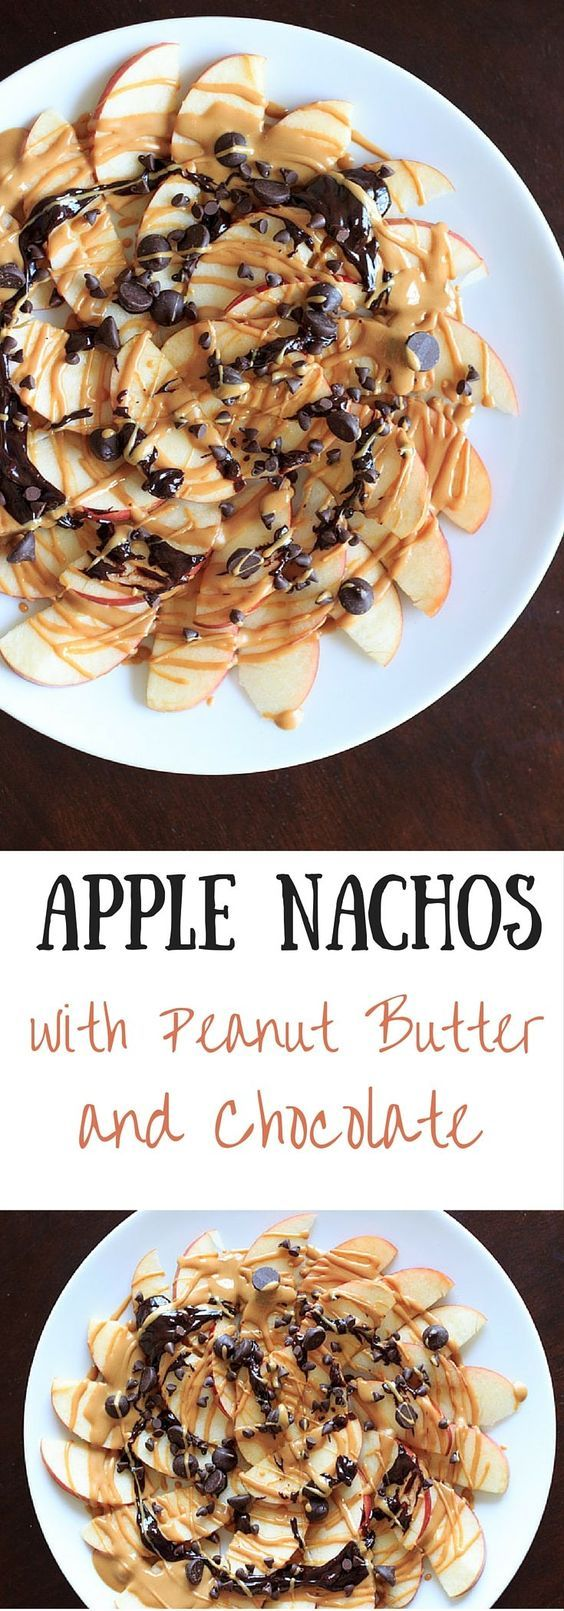 33 delicious new ways to eat peanut butter